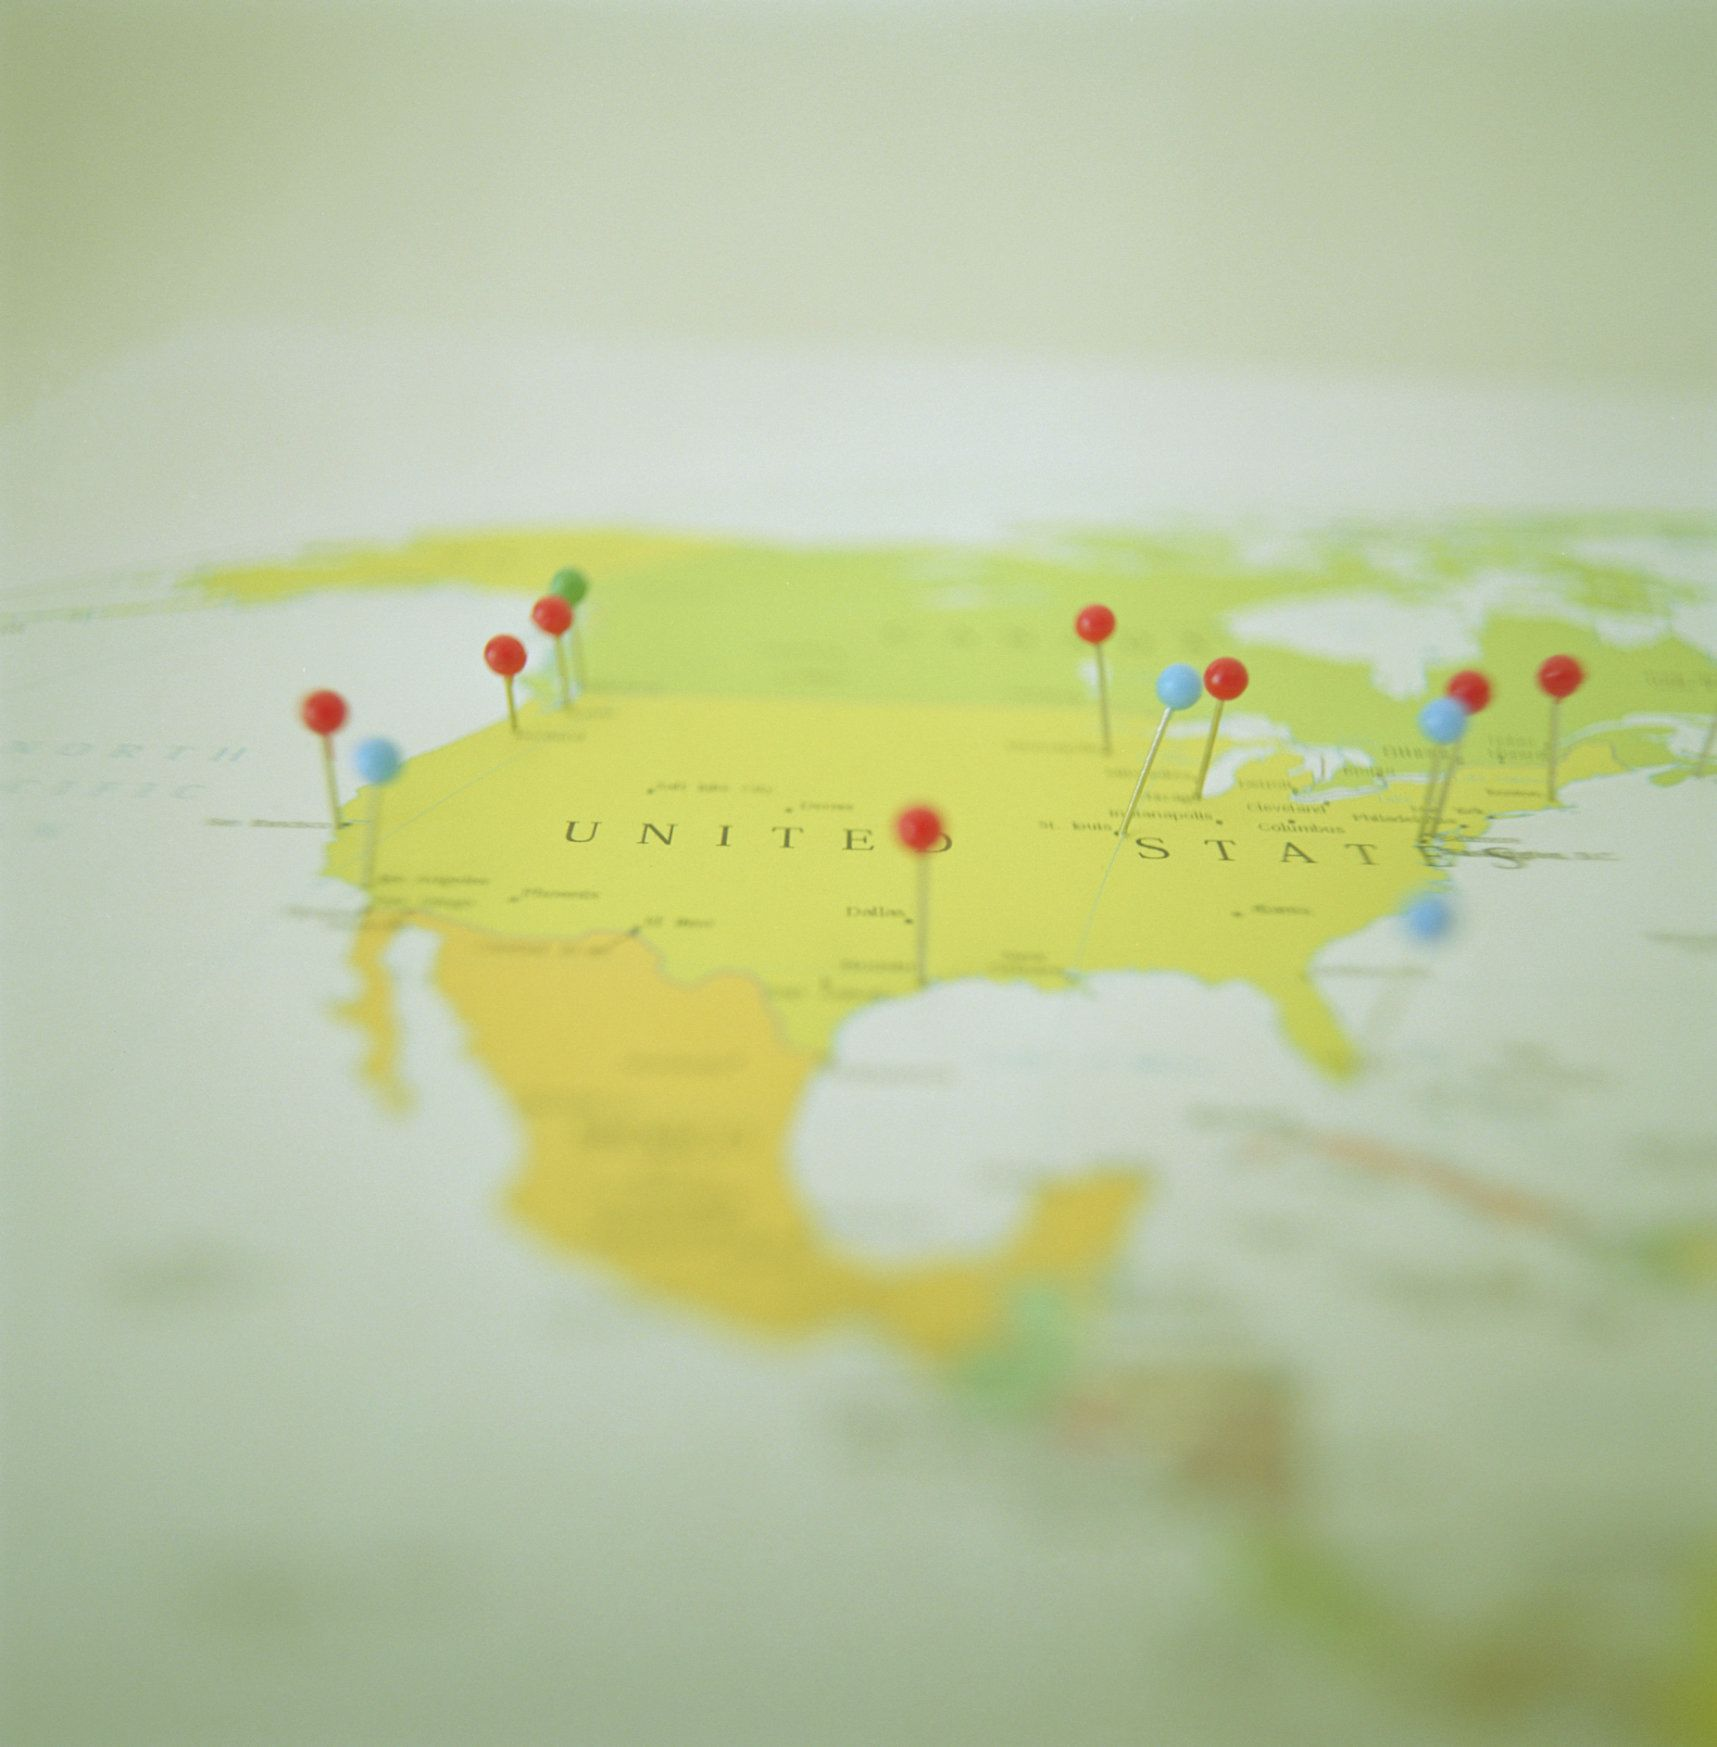 Stickpins marking cities on map, surface level